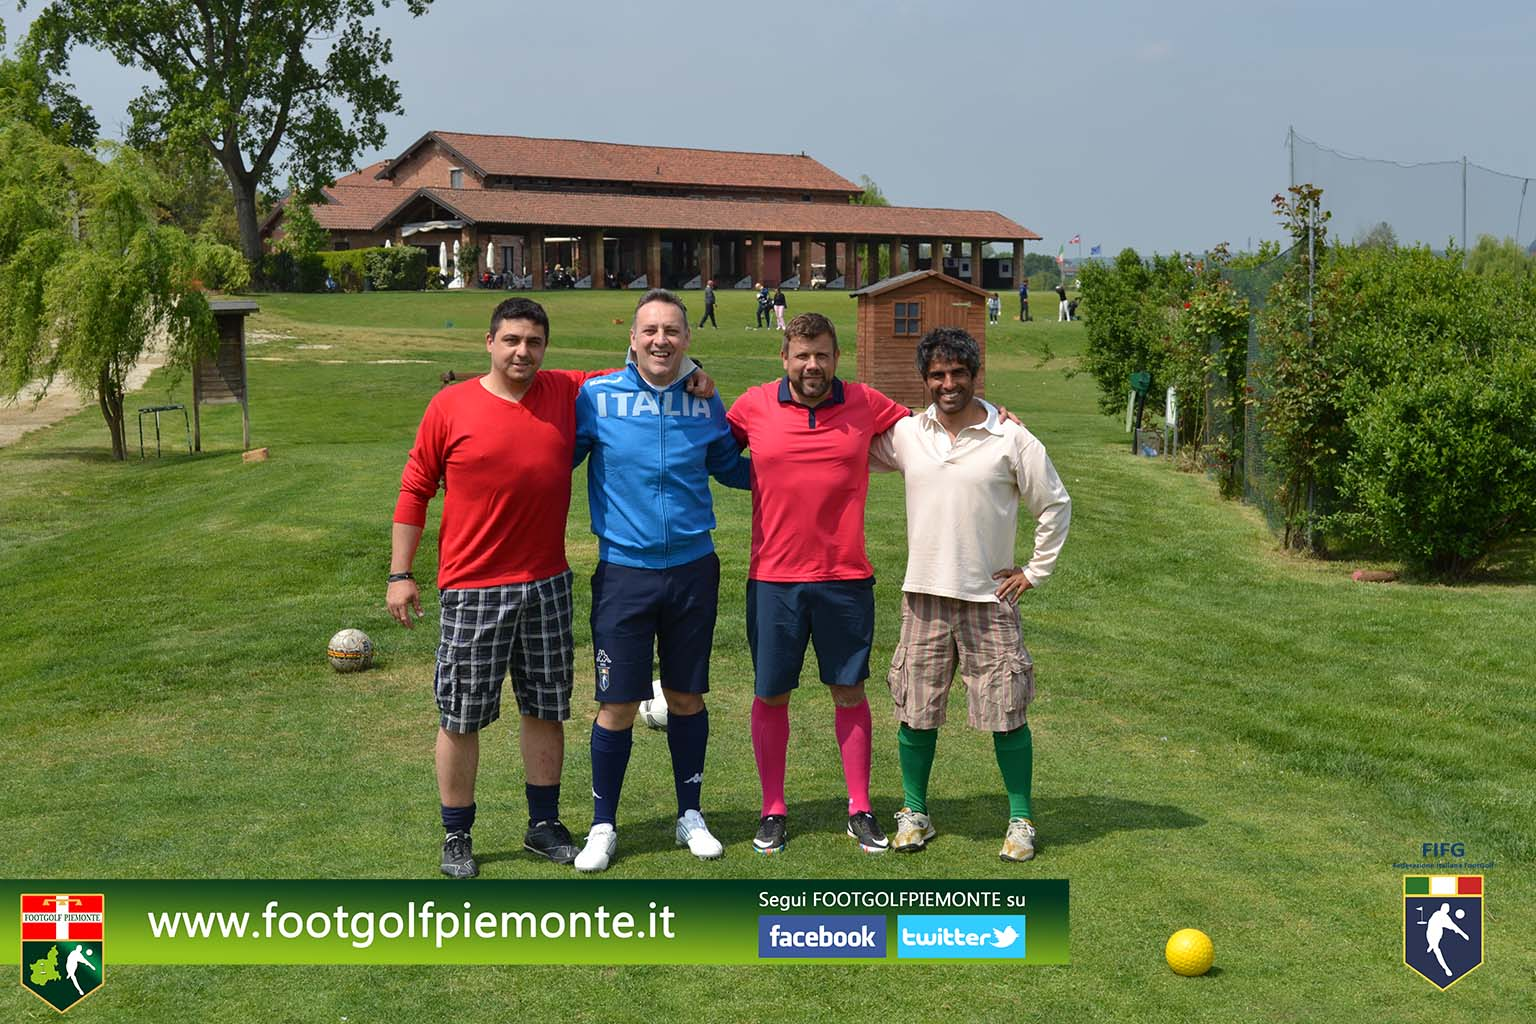 FOTO 9 Regions' Cup Footgolf Piemonte 2016 Golf Città di Asti (At) 30apr16-97